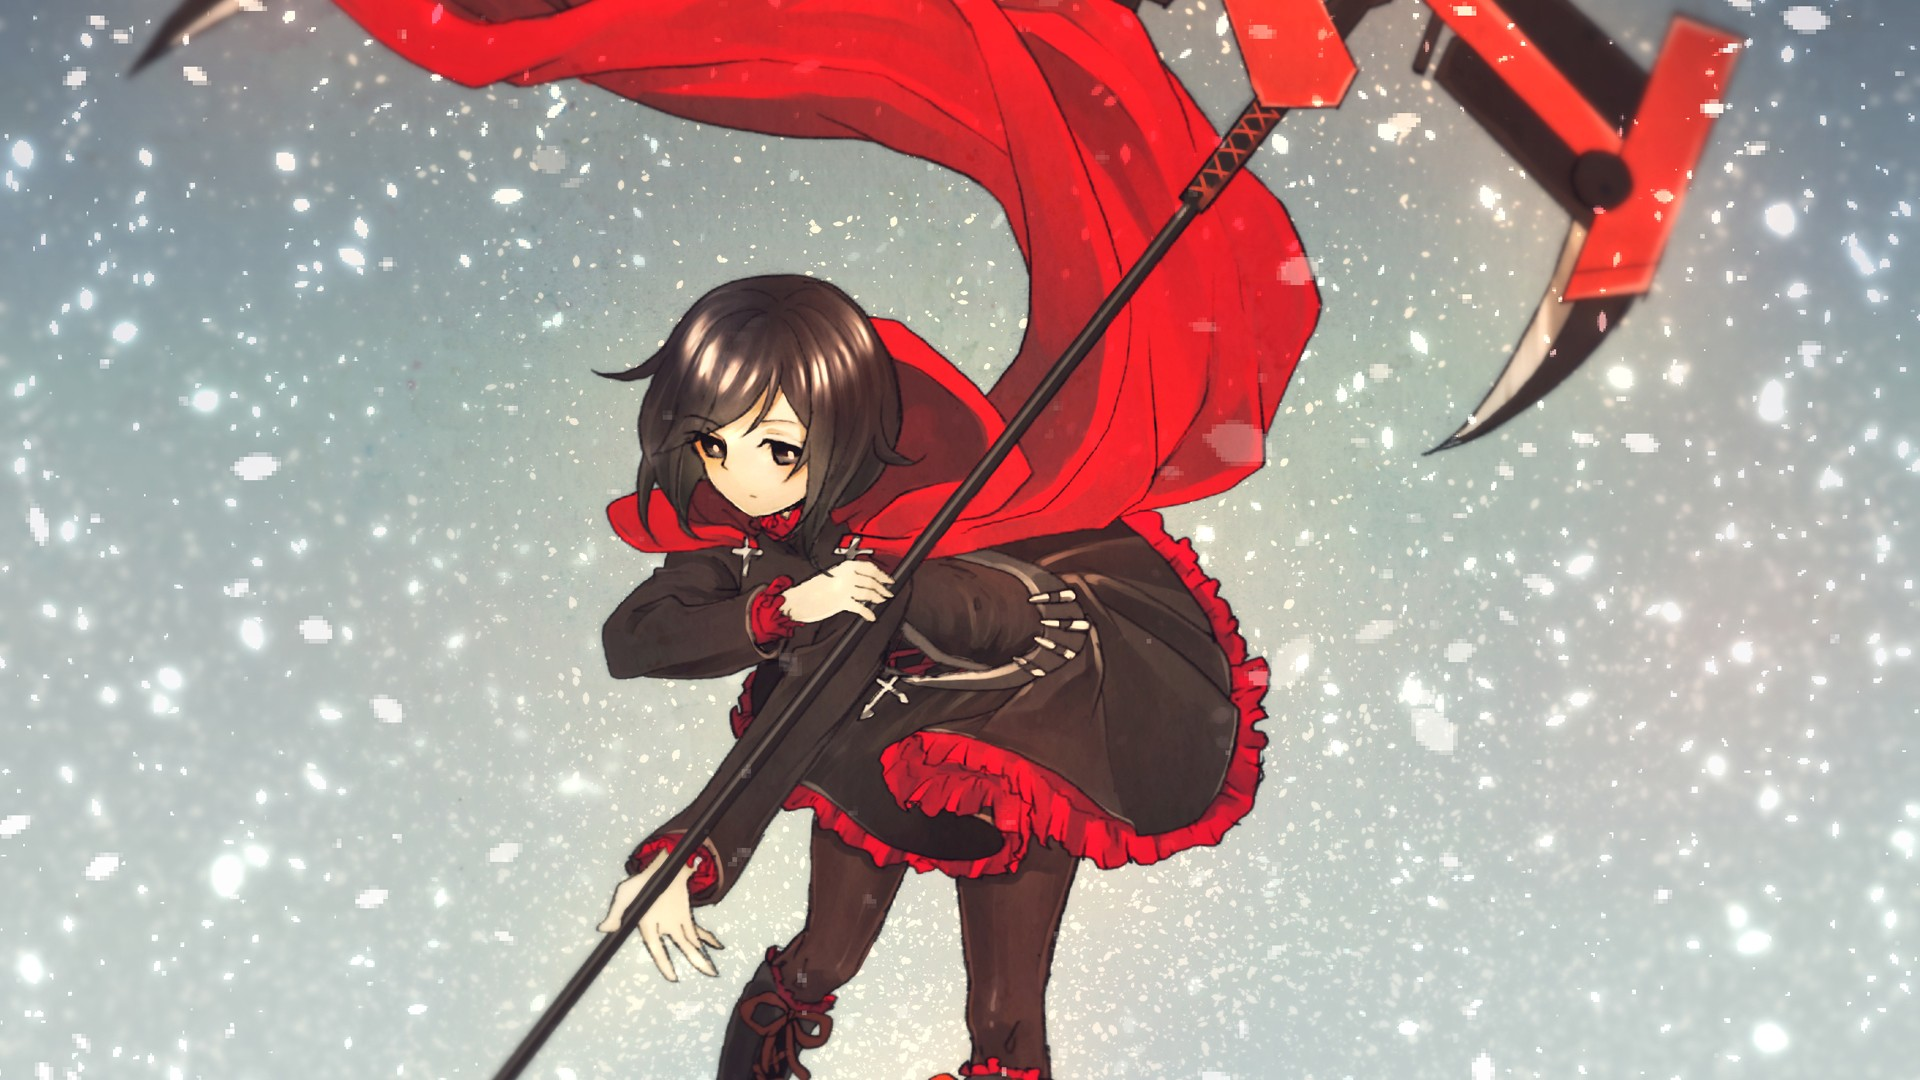 Ruby Rose RWBY Monty Oum wallpaper background 1920x1080